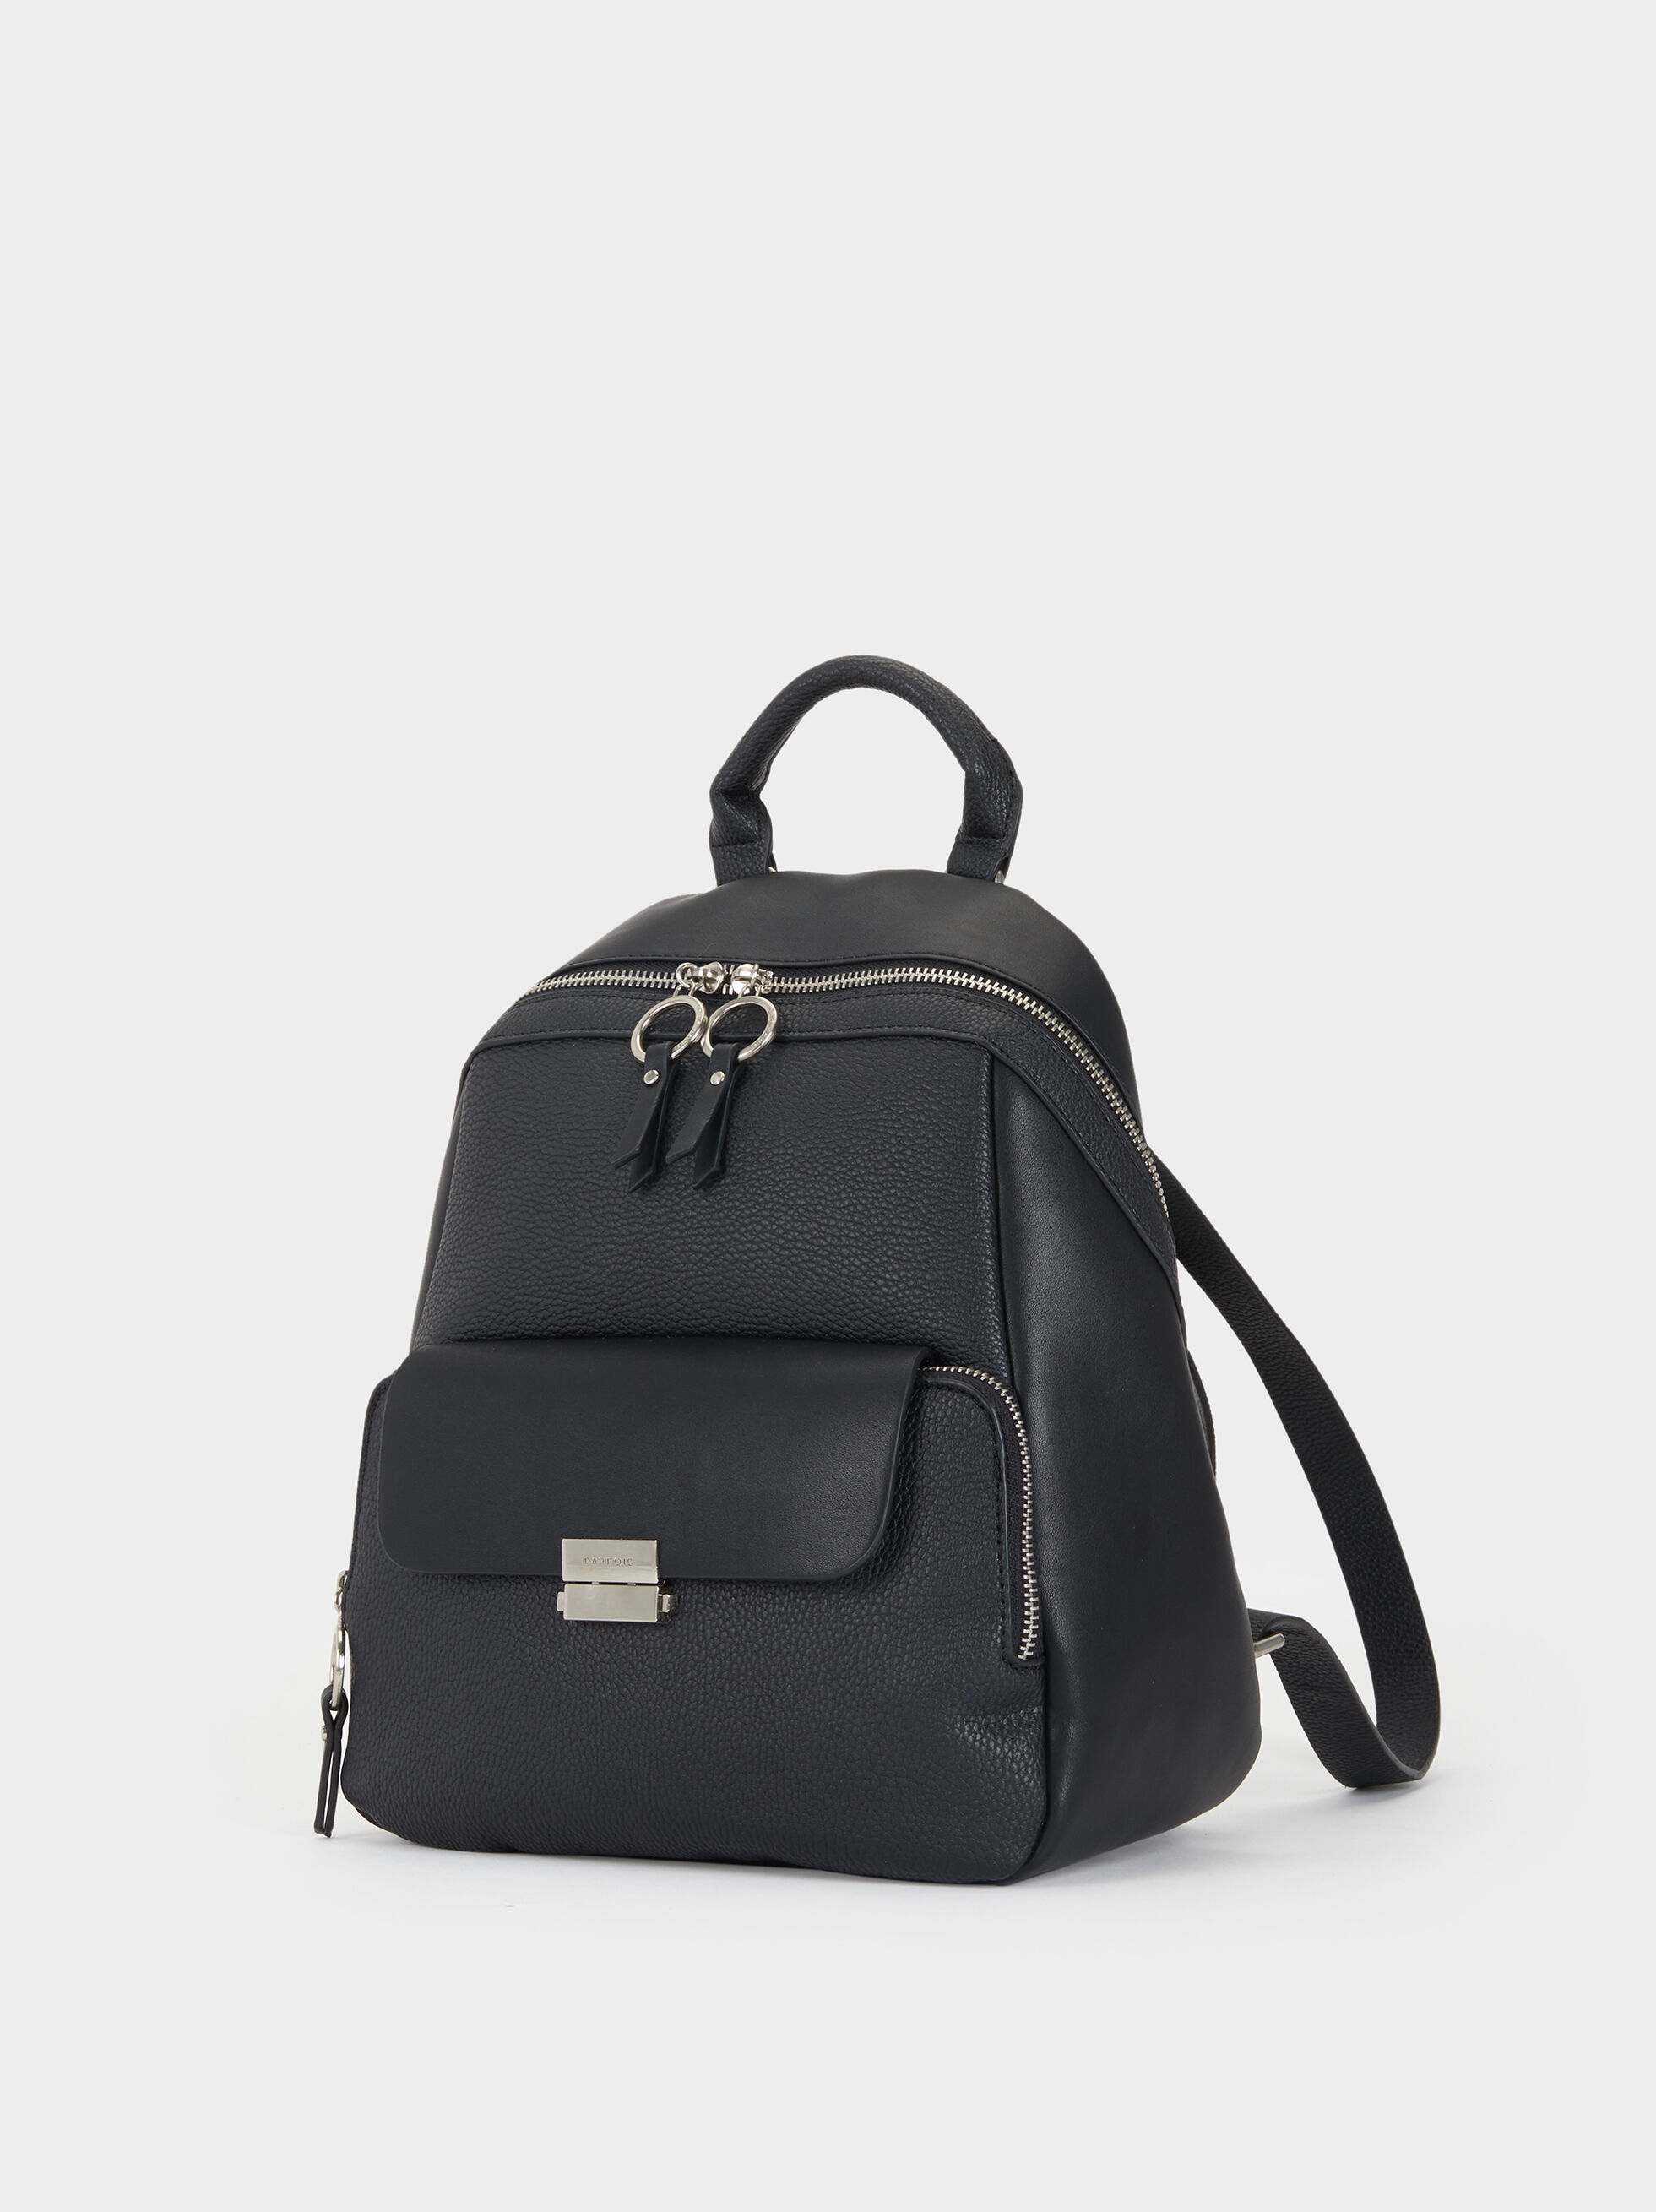 Backpack With Outer Pocket, Black, hi-res